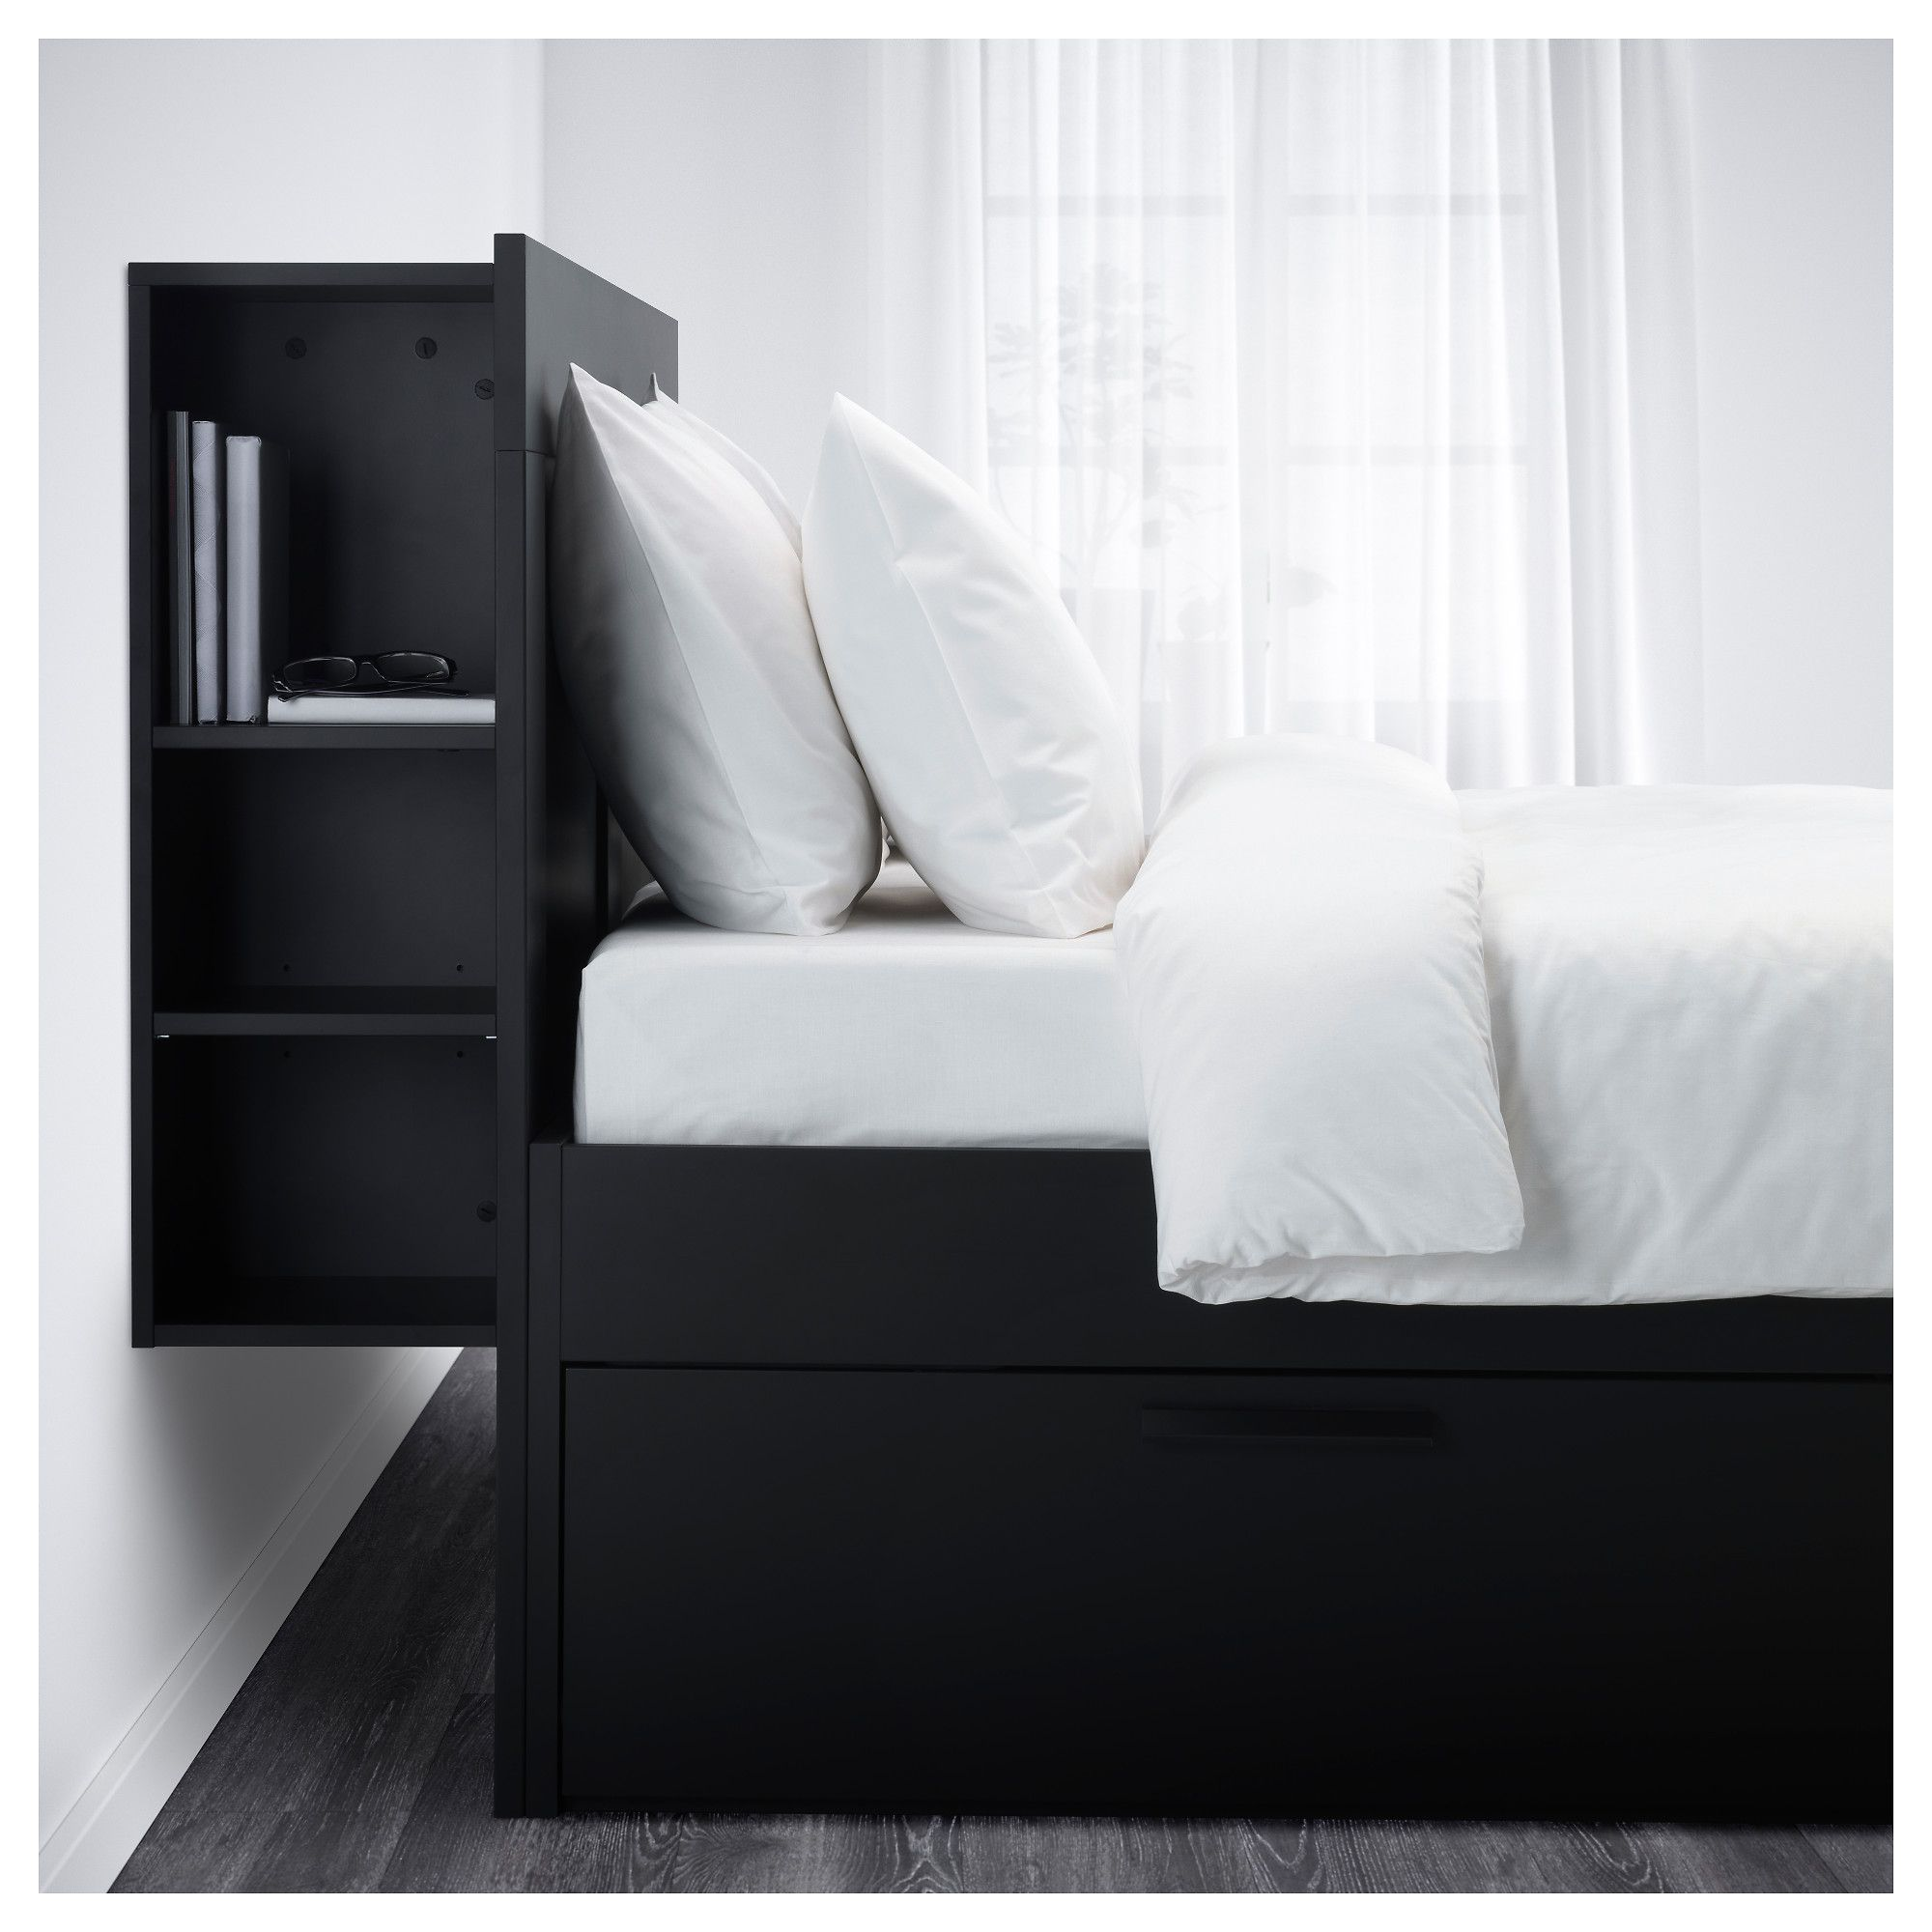 Ikea Brimnes Bed Frame With Storage Headboard Black Leirsund